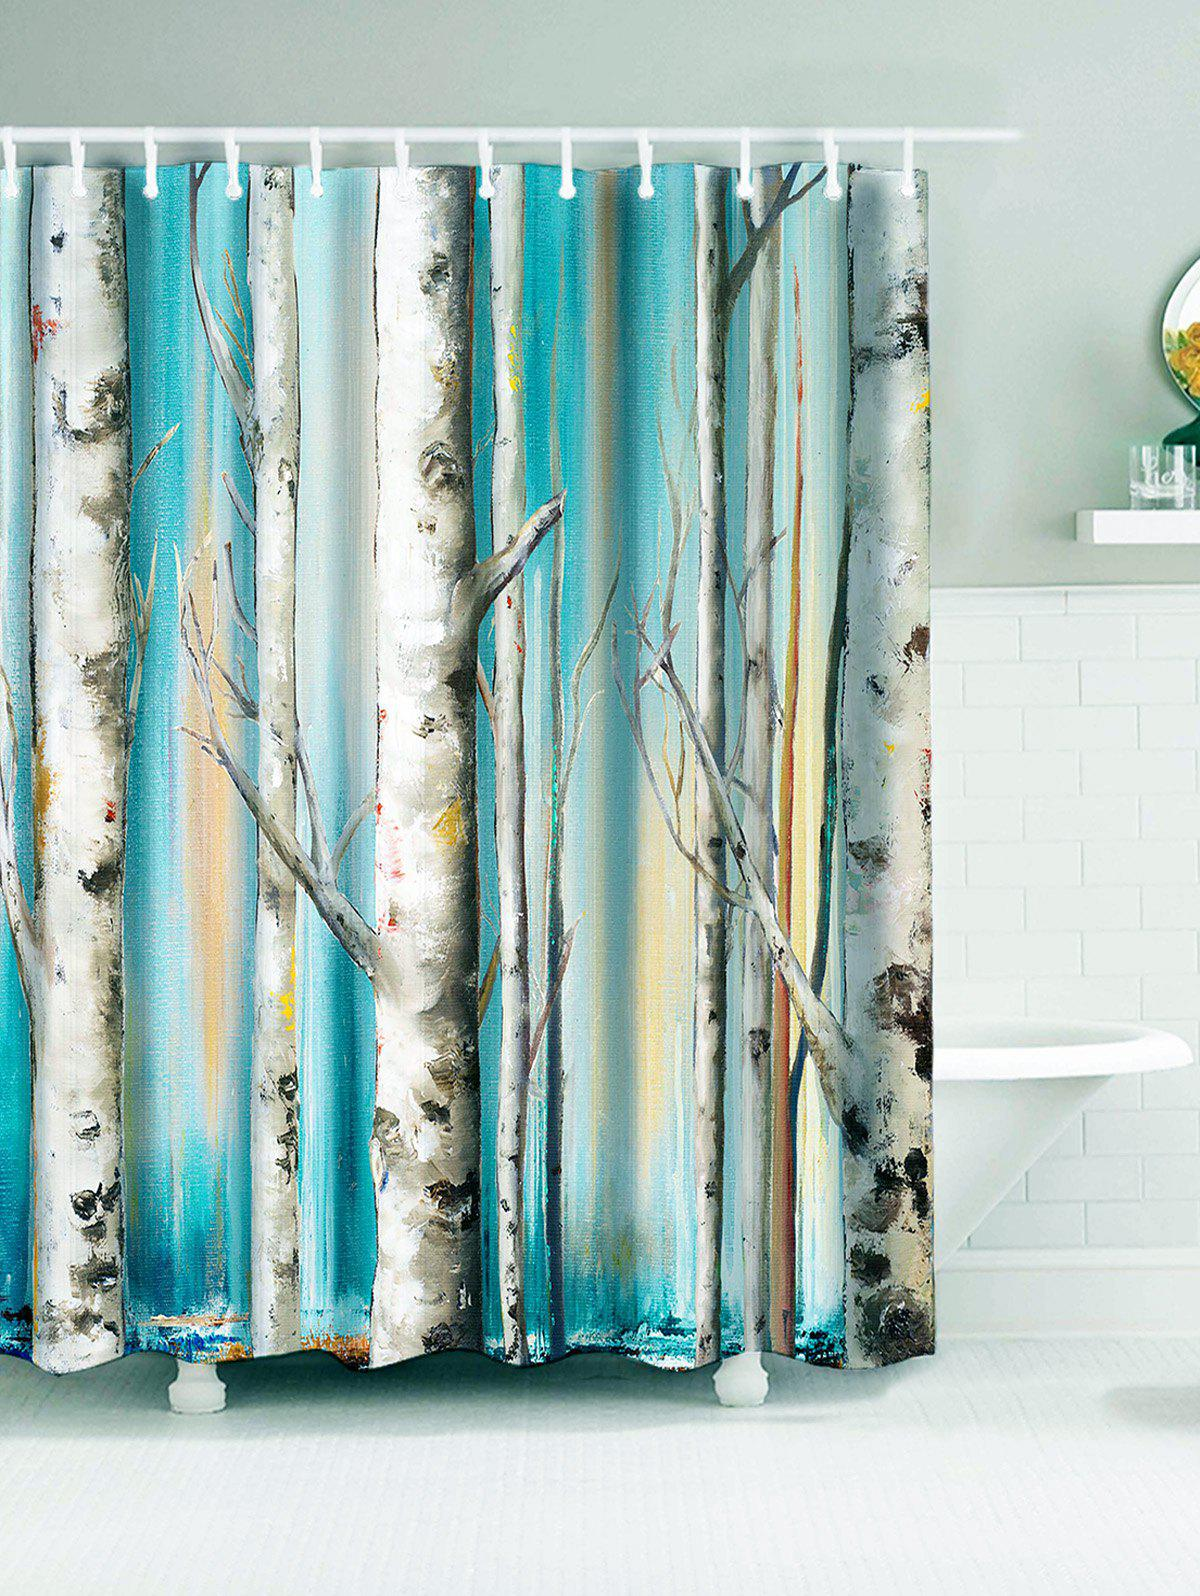 Winterly Forest Print Bathroom Waterproof Shower Curtain sunlight forest print waterproof bathroom shower curtain